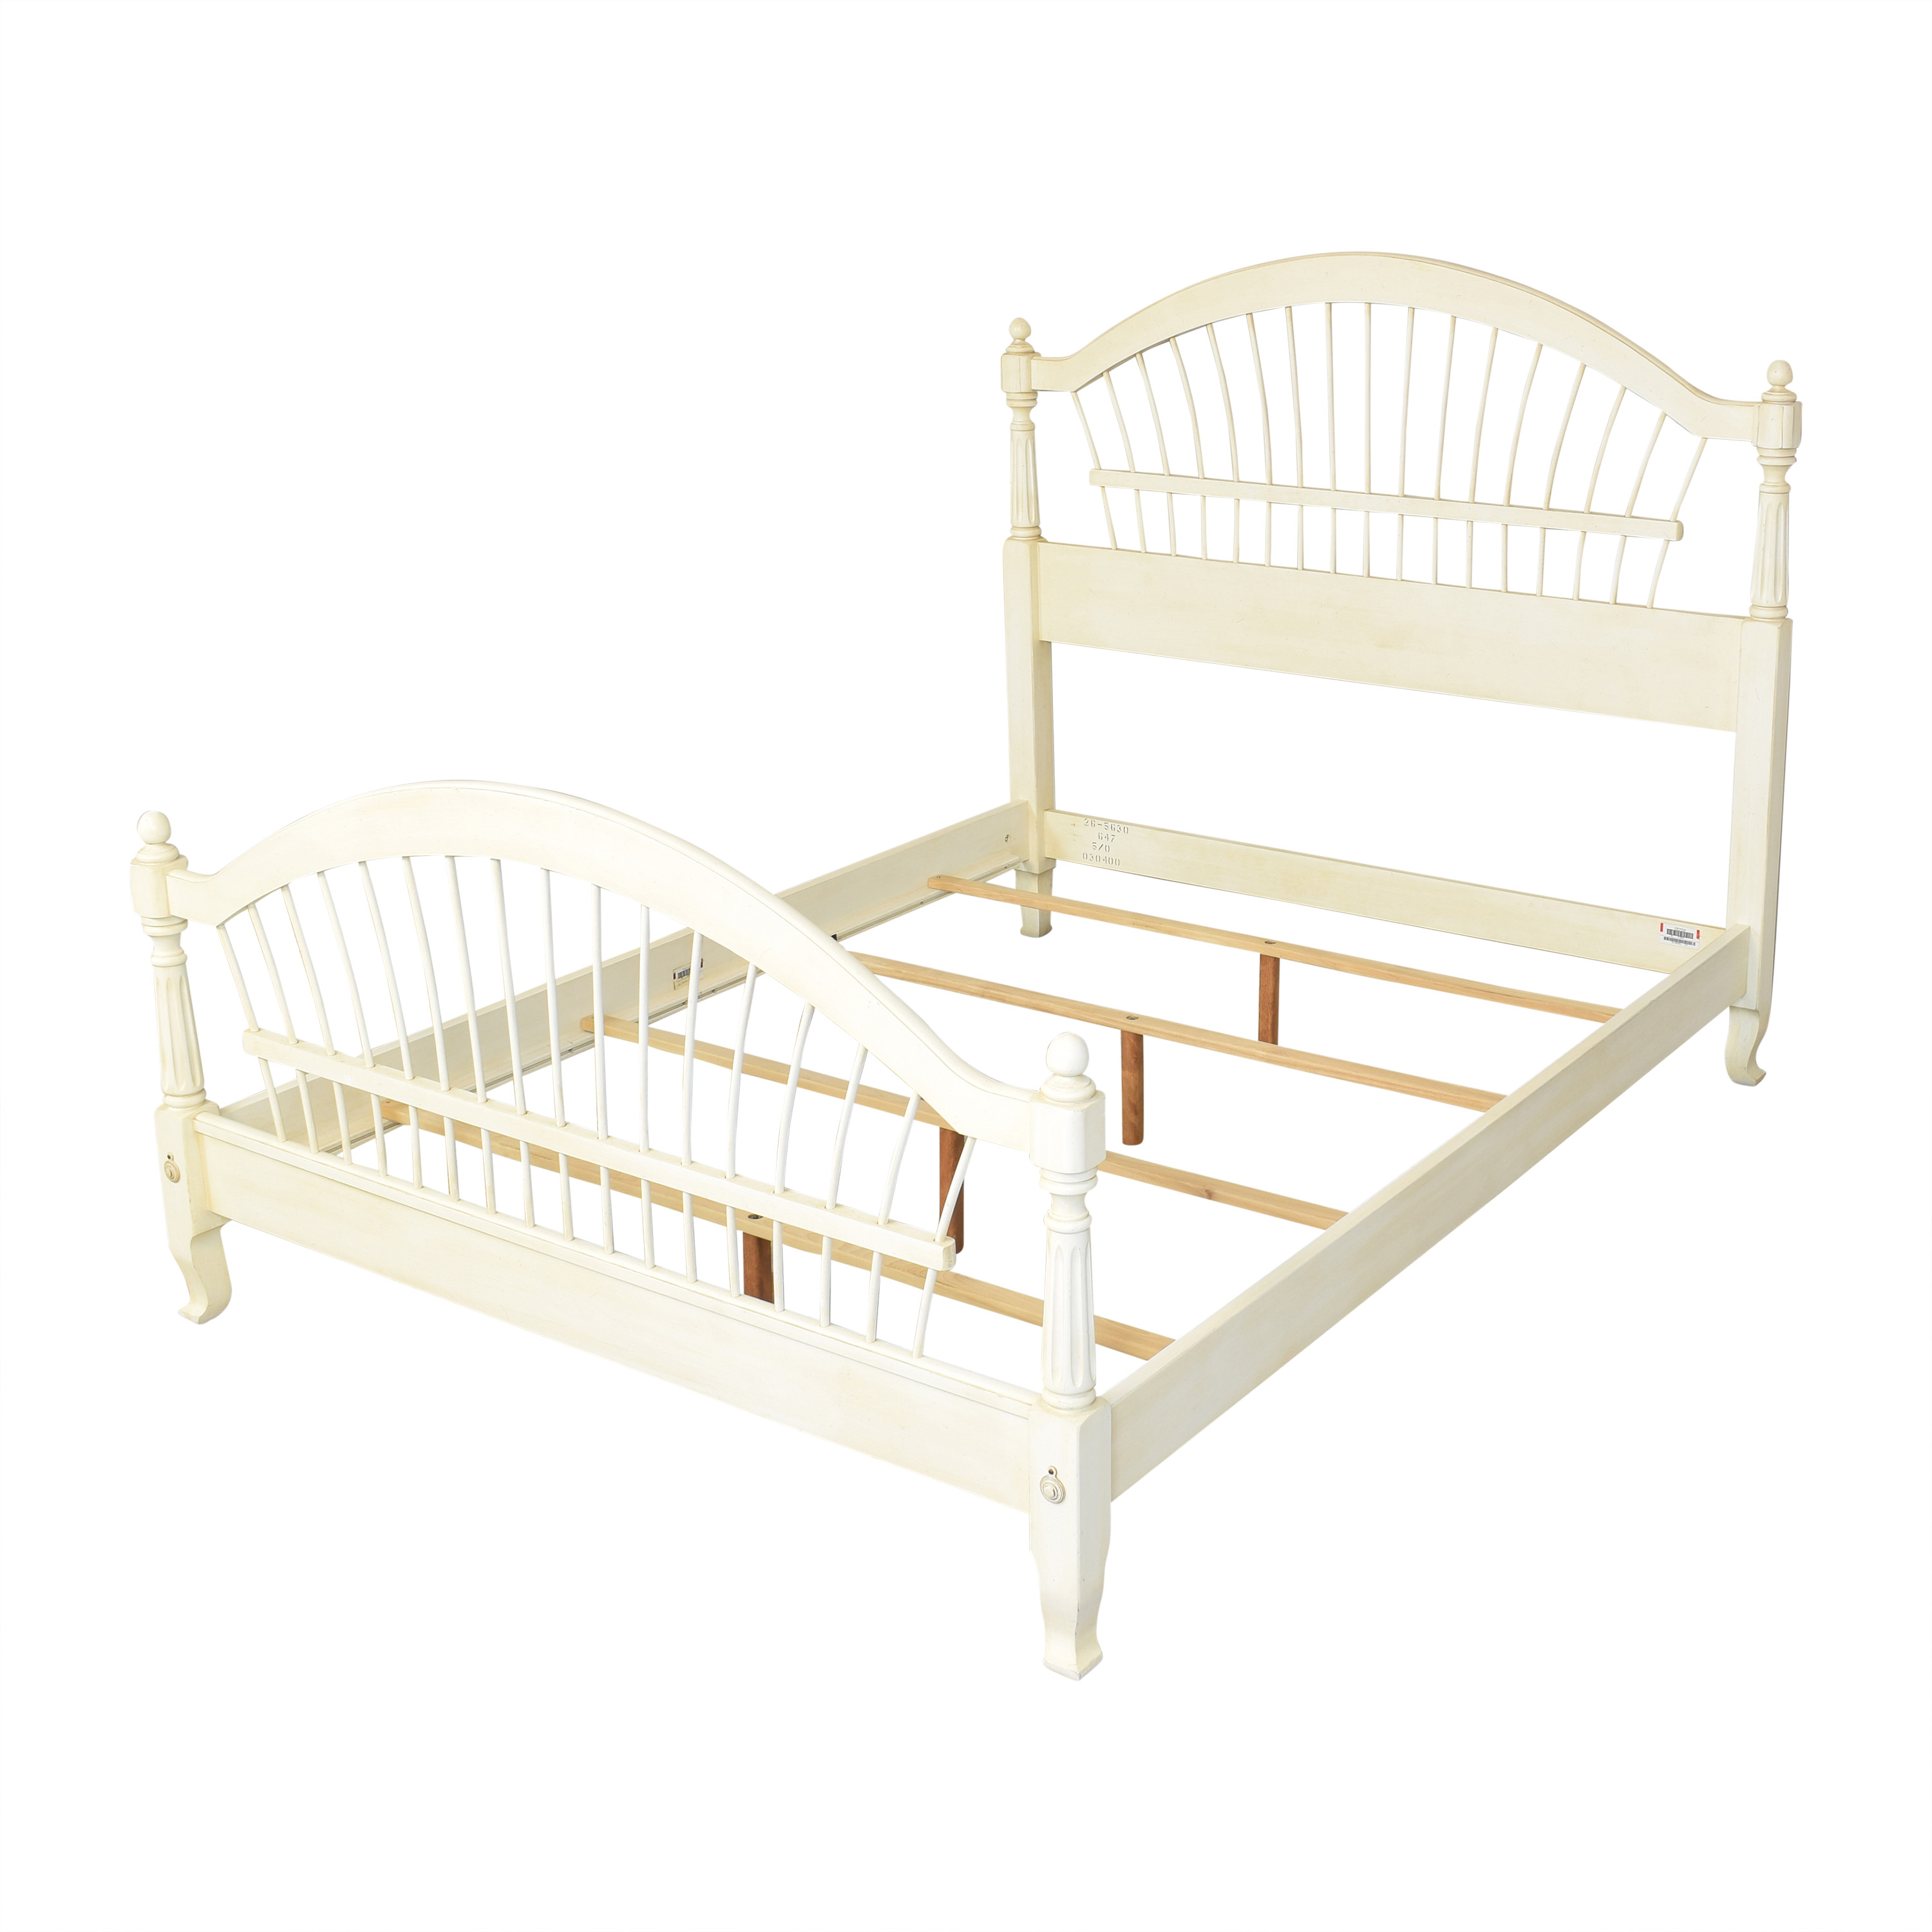 Ethan Allen Ethan Allen Country French Queen Bed dimensions